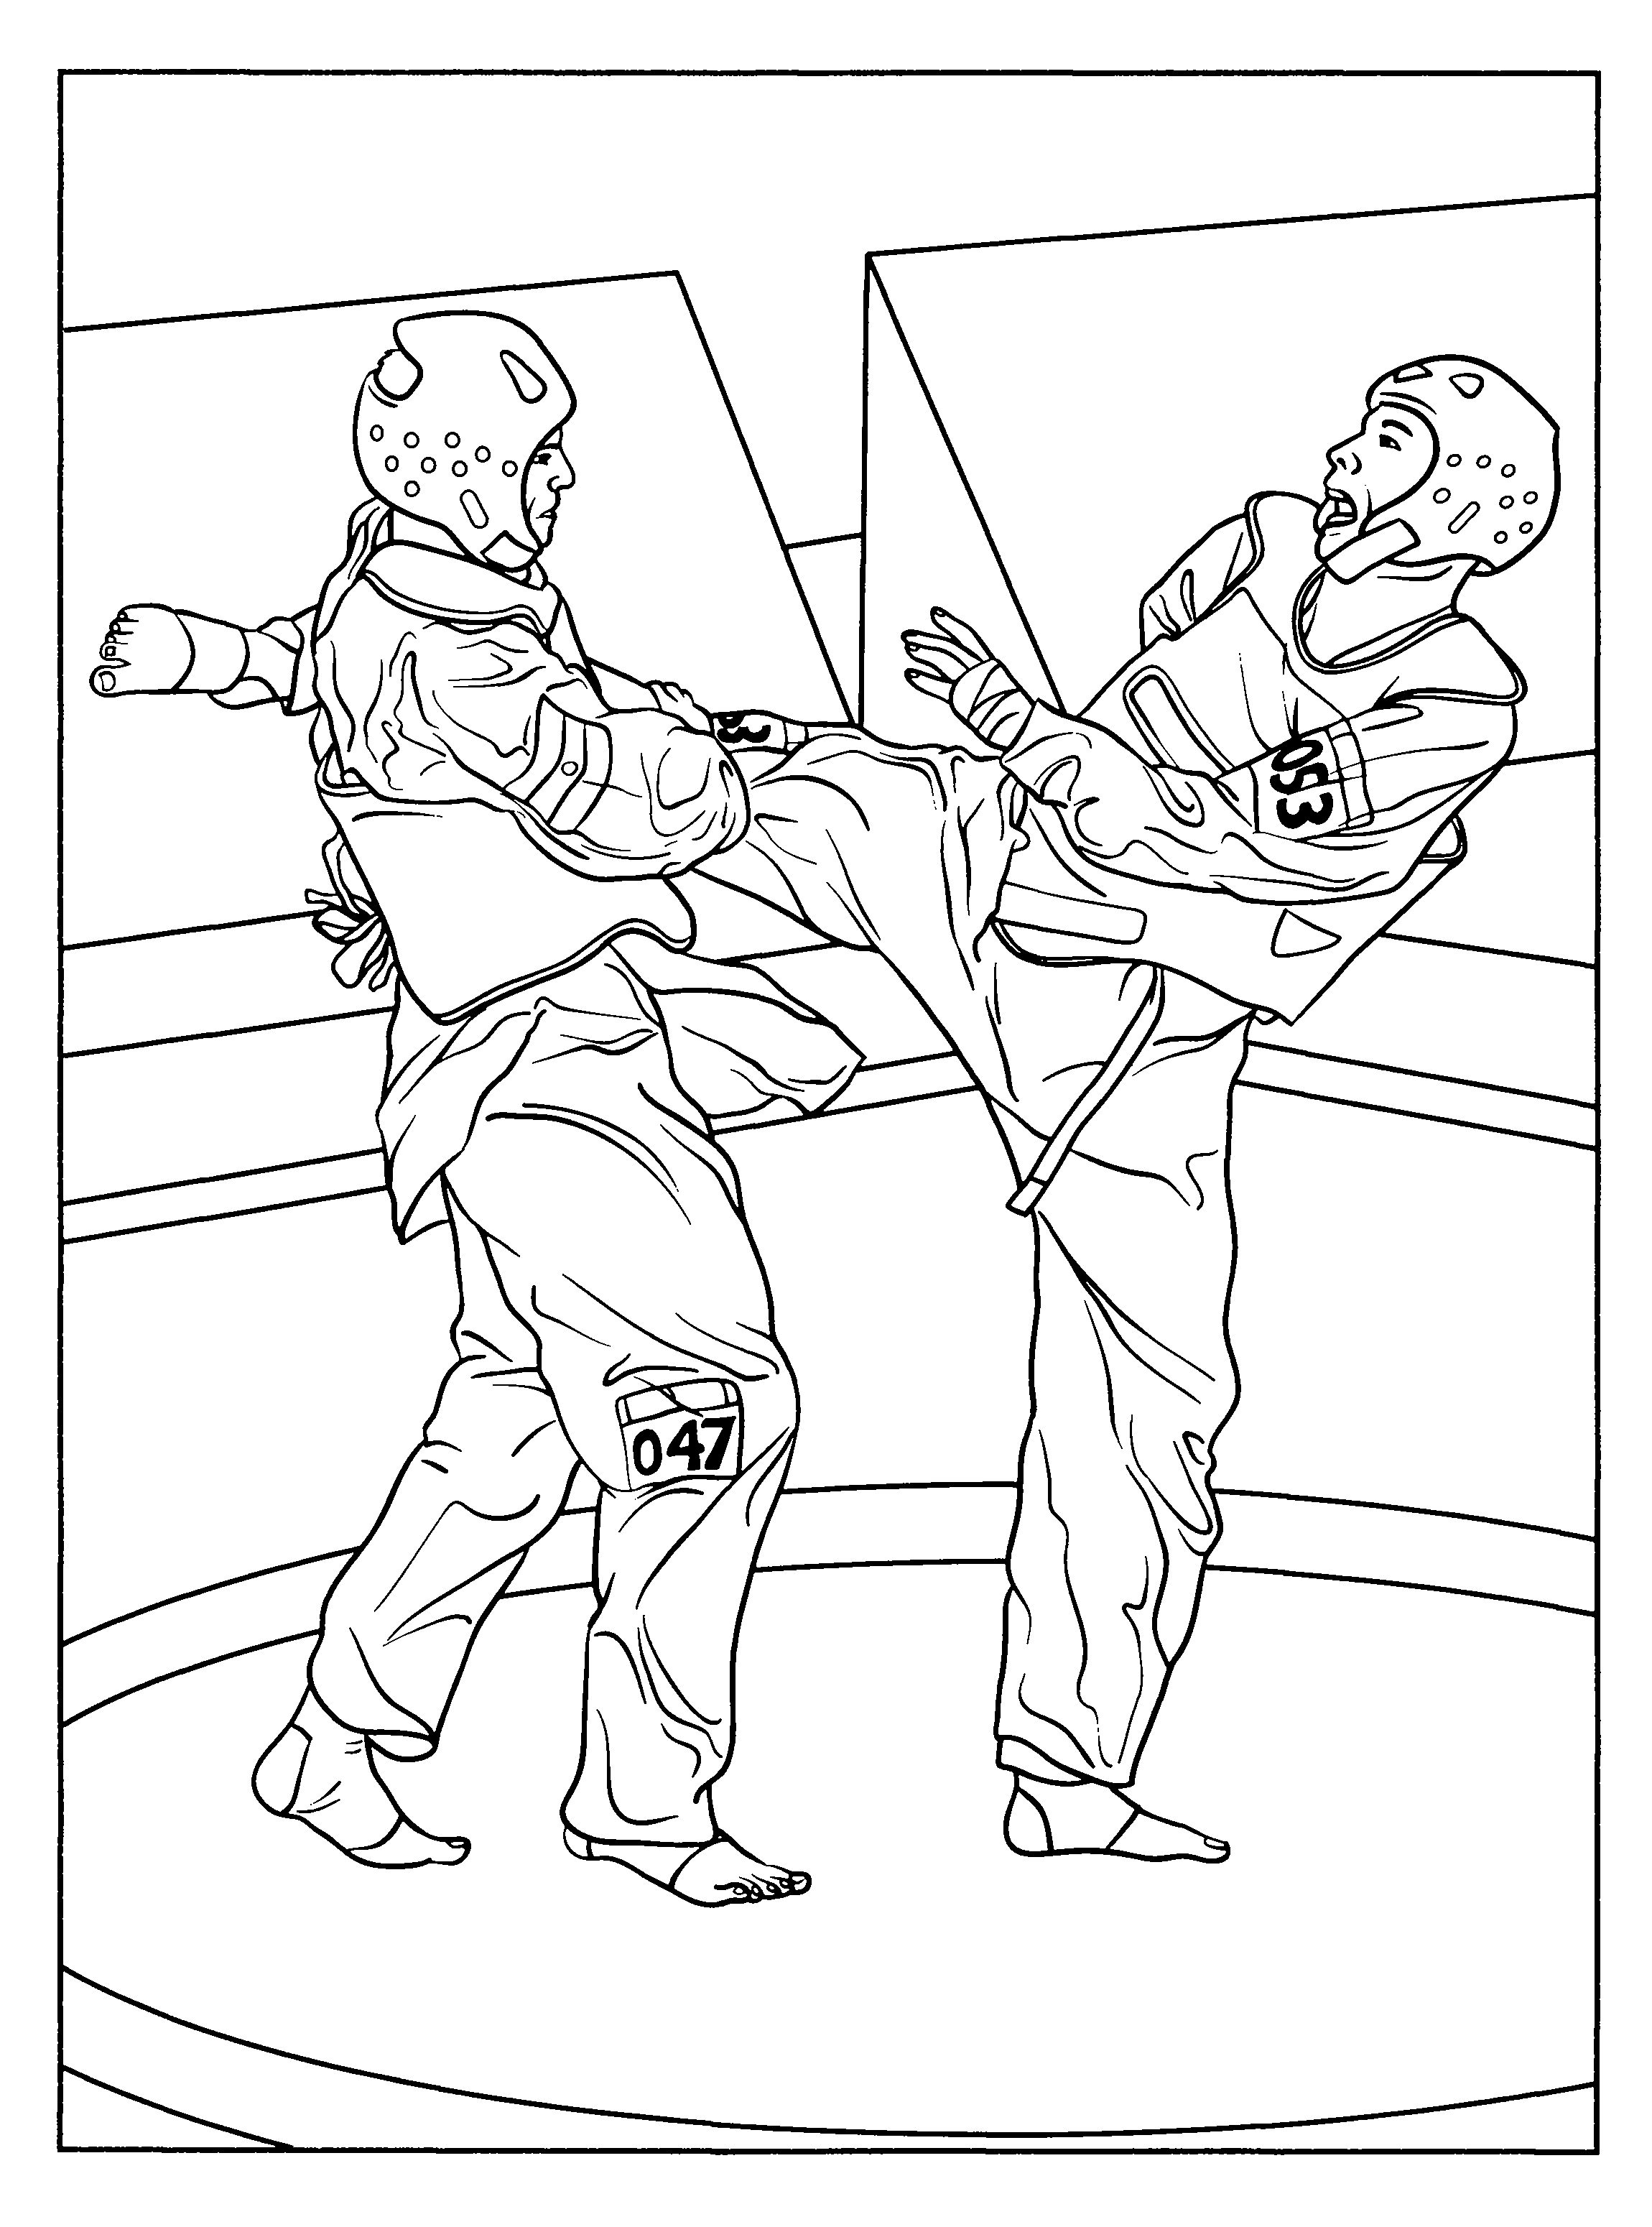 Karate Coloring Pages For Kids Cartoon Coloring Pages Toddler Coloring Book Sports Coloring Pages